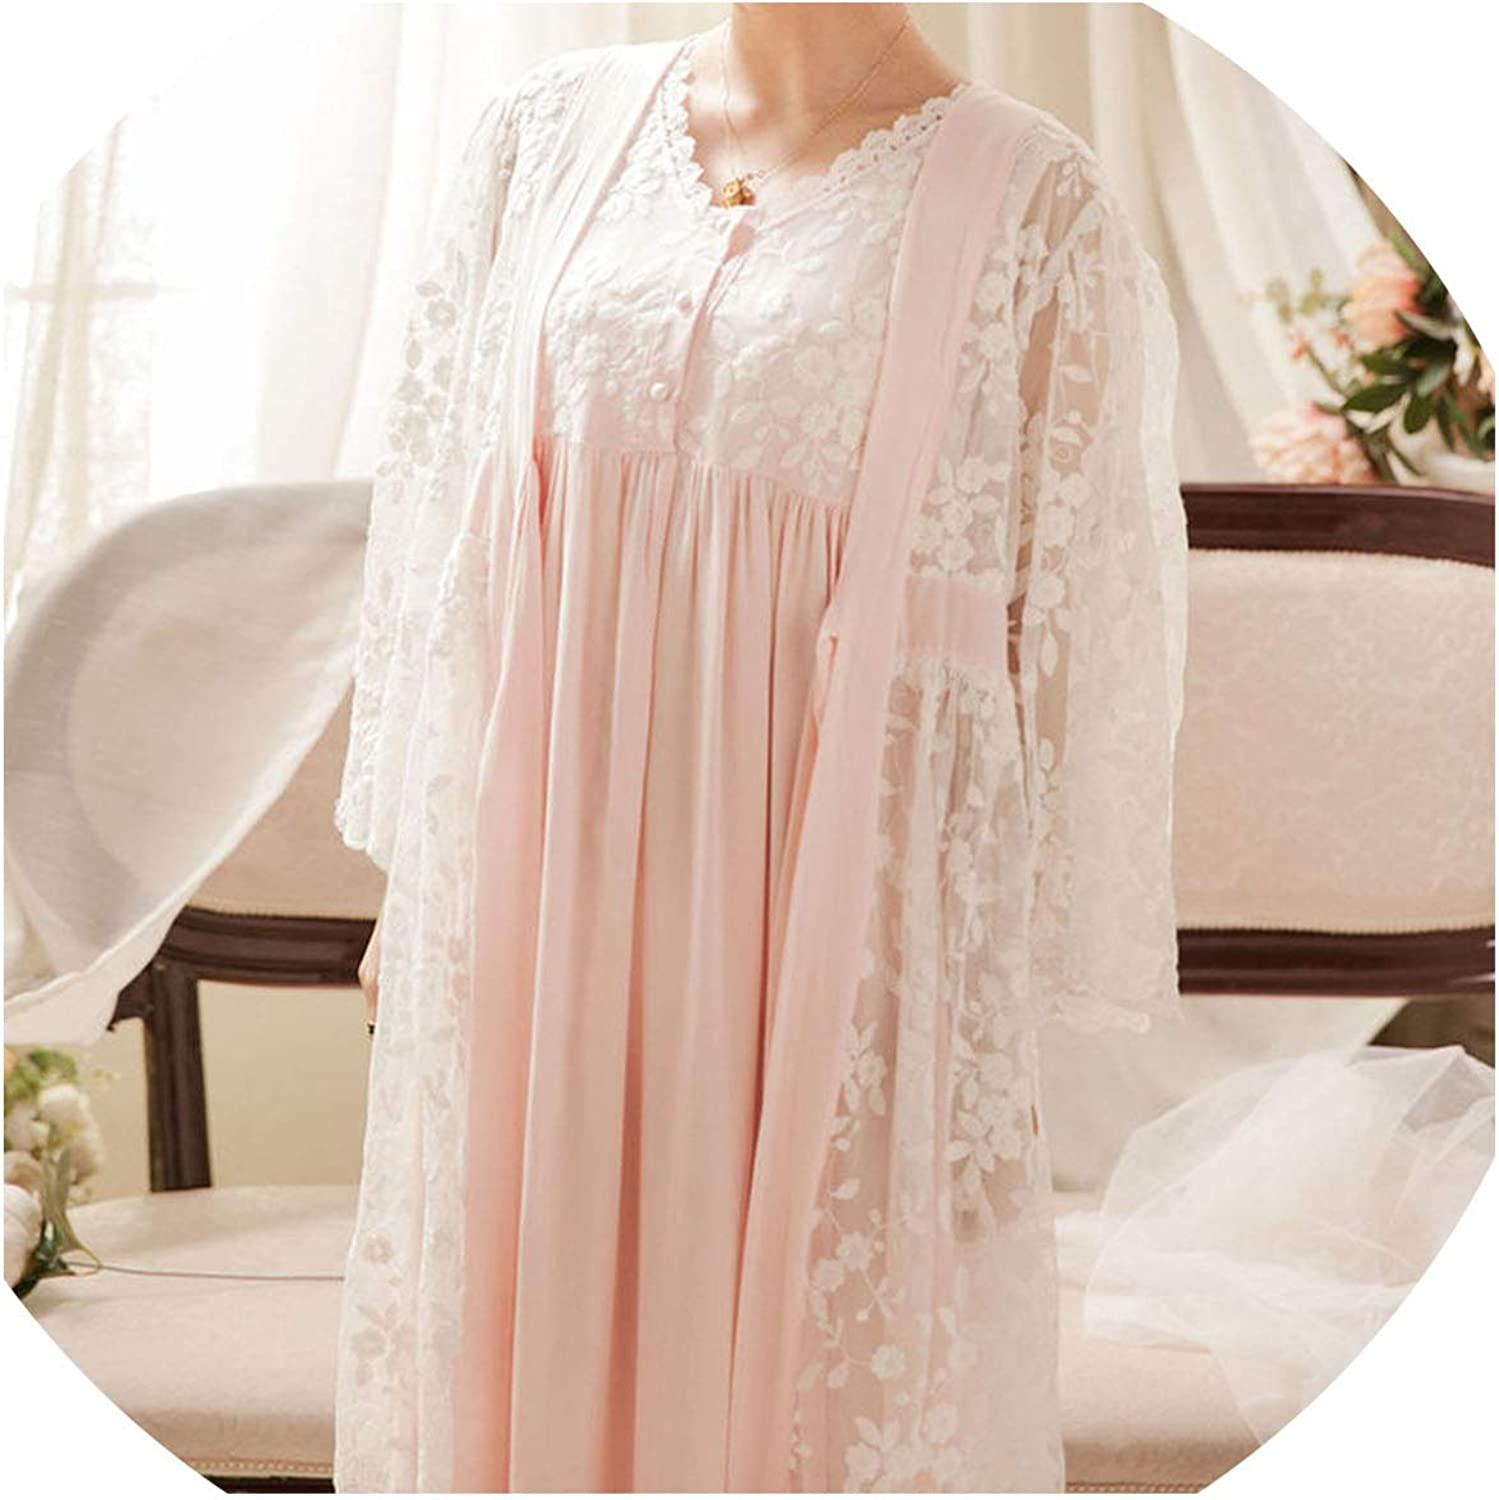 2019 Robe Gowns Set 2 Piece Sleepwear Vintage Robe Lace Nightgown Set for Ladies Embroidery Sleepwear